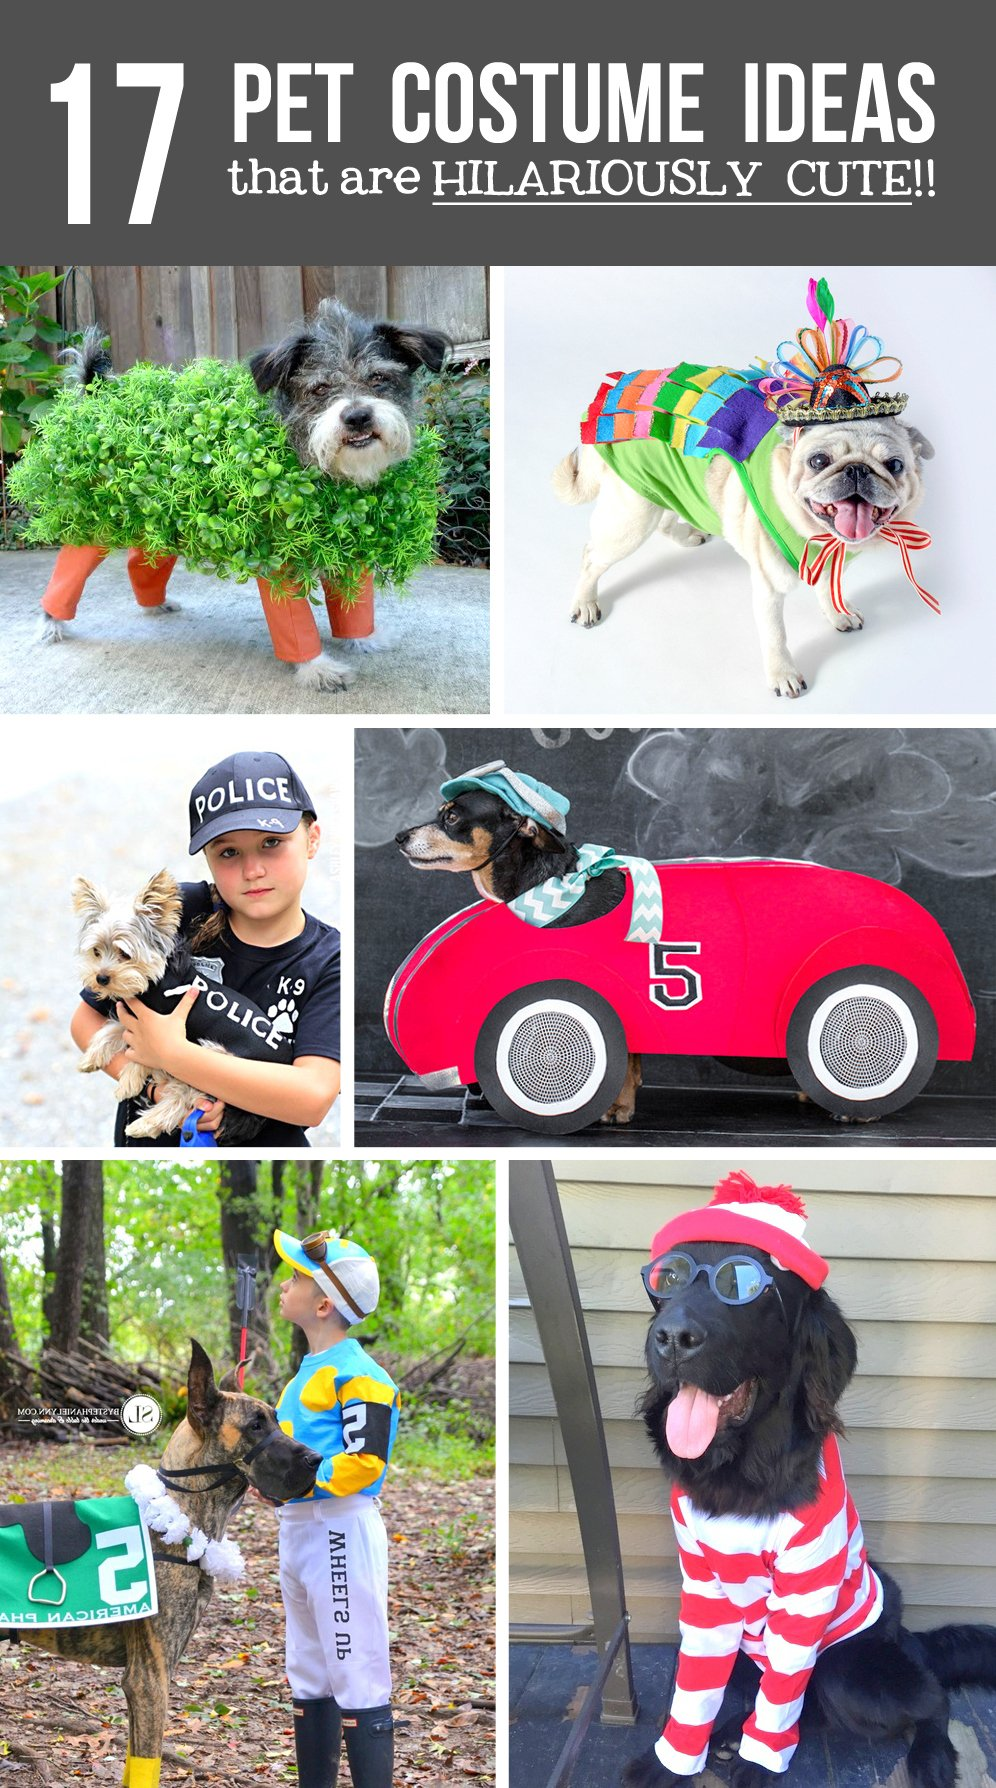 17 Diy Pet Costume Ideas That Are Hilariously Cute Make It And